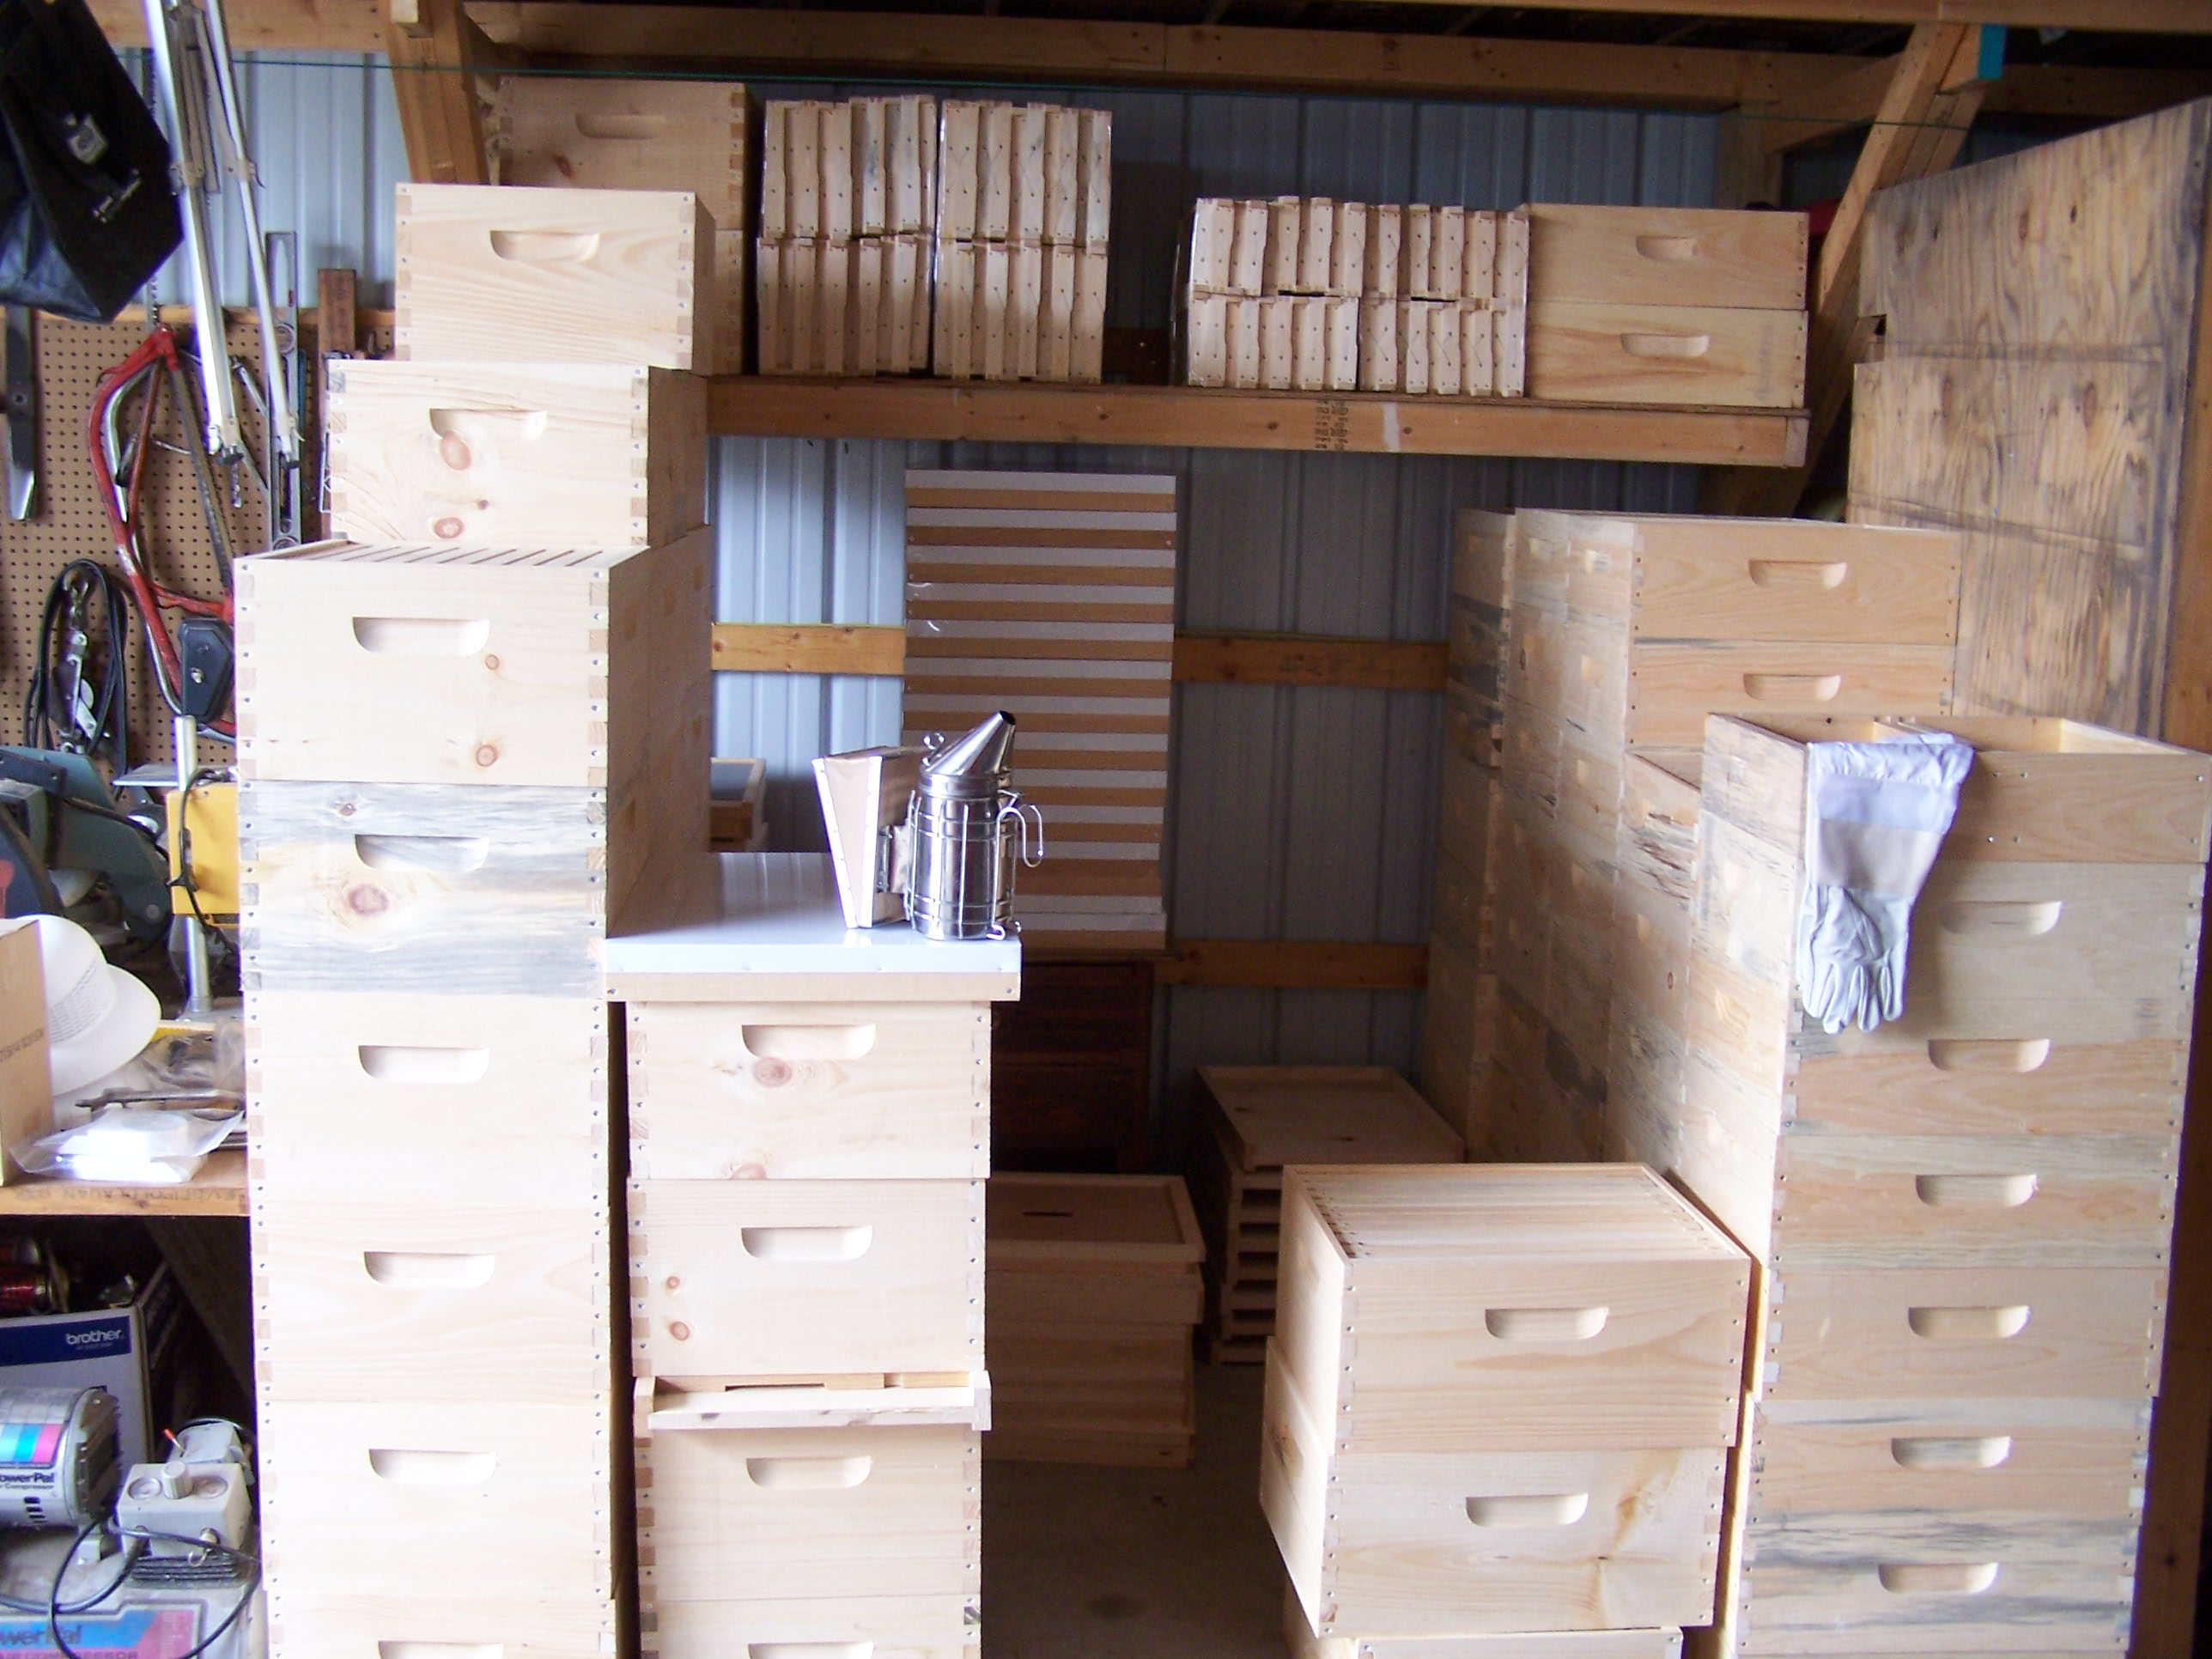 Michigan mason county custer - To Accomplish This We Started Mason County Bee Supplies And Now Have Woodware In Stock At 3011 East Wilson Road Custer Michigan That S All For Now